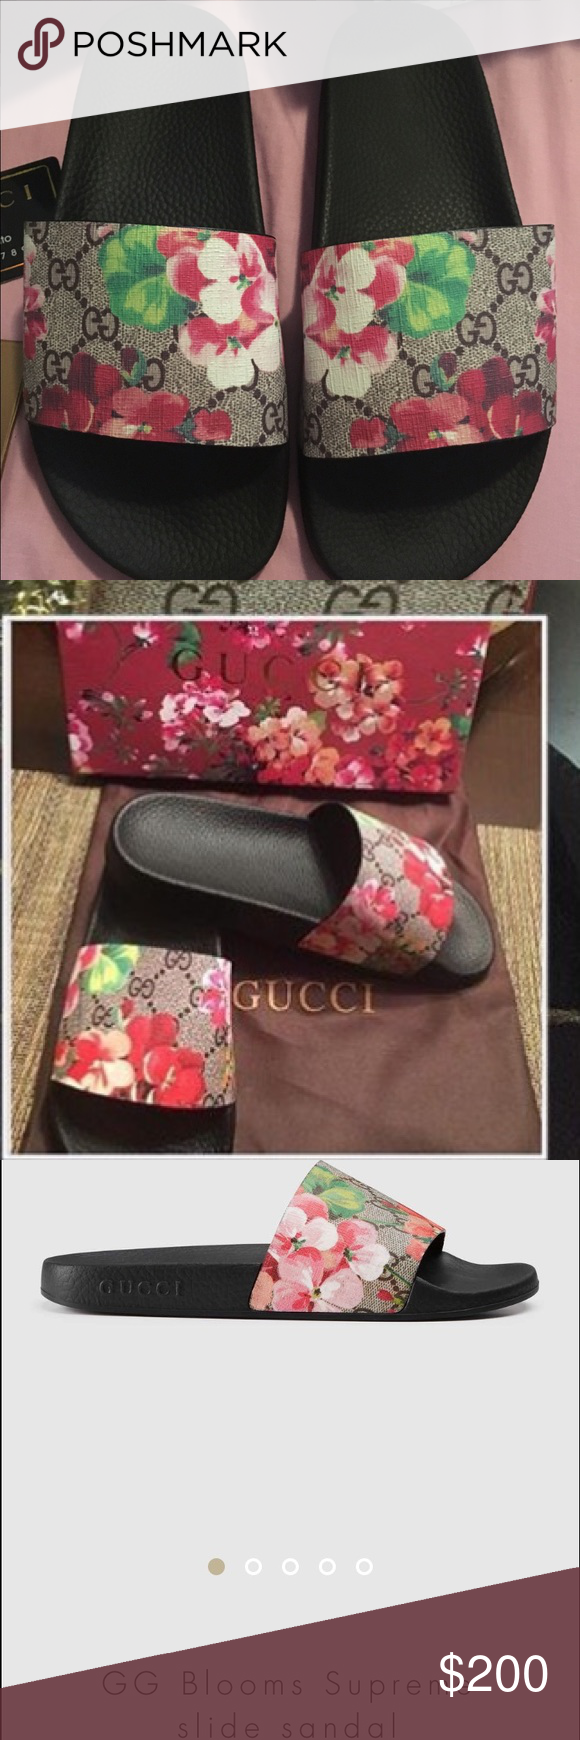 79b3e0fdb GG Blooms Supreme Slide Sandal Comfortable floral slide sandal perfect for  a casual day out. Gucci Shoes Sandals